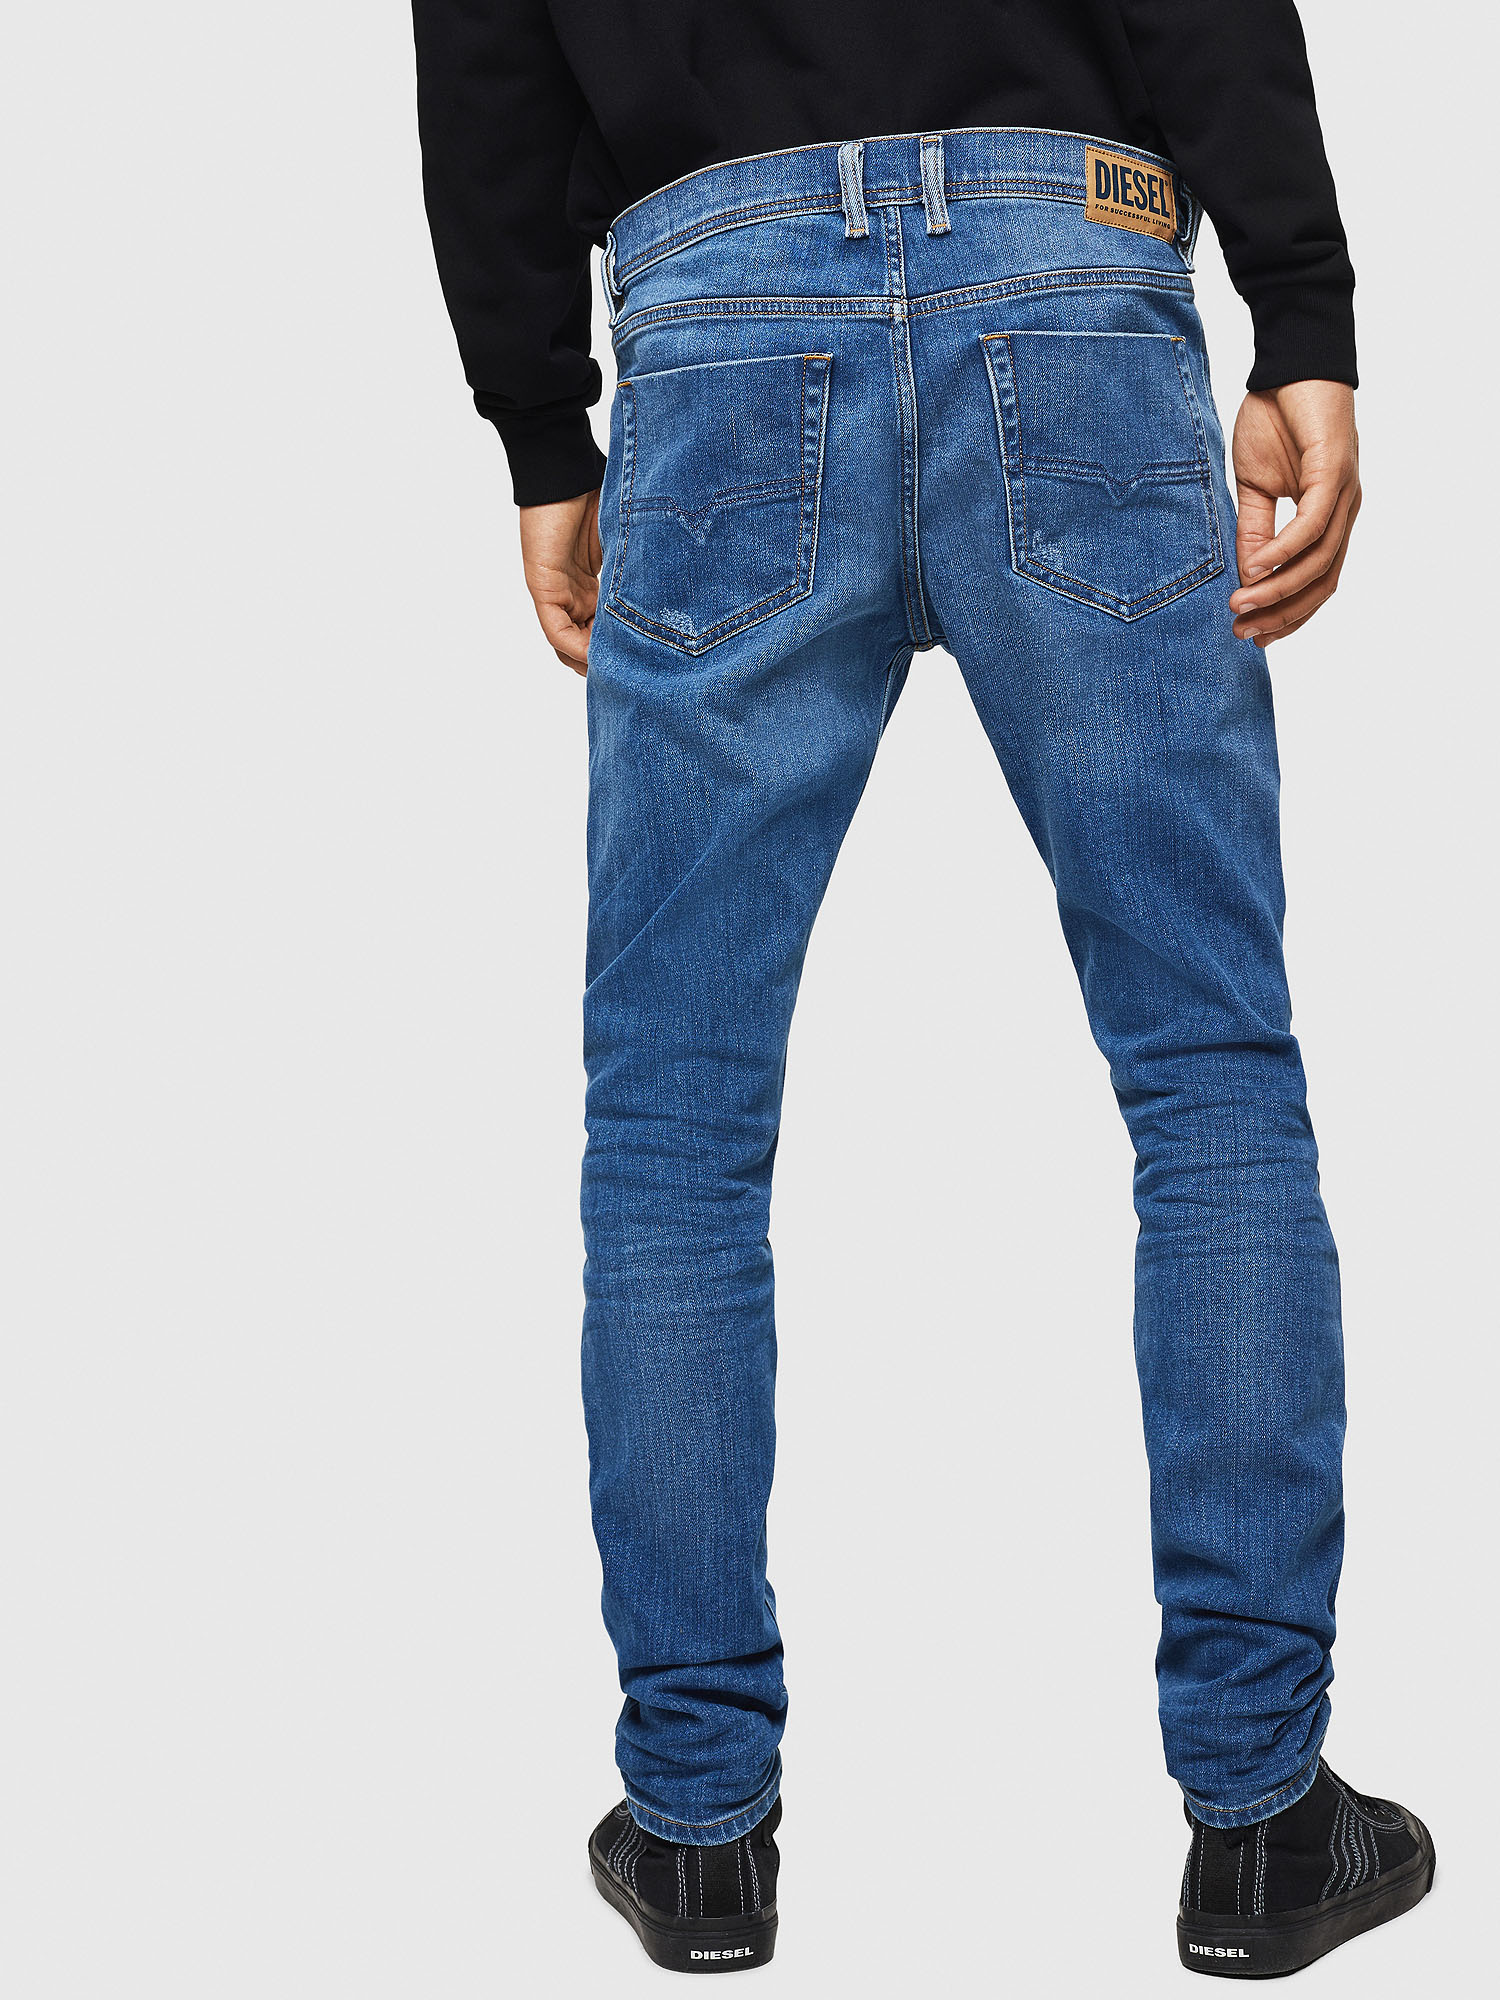 Diesel - Tepphar 083AX,  - Jeans - Image 2